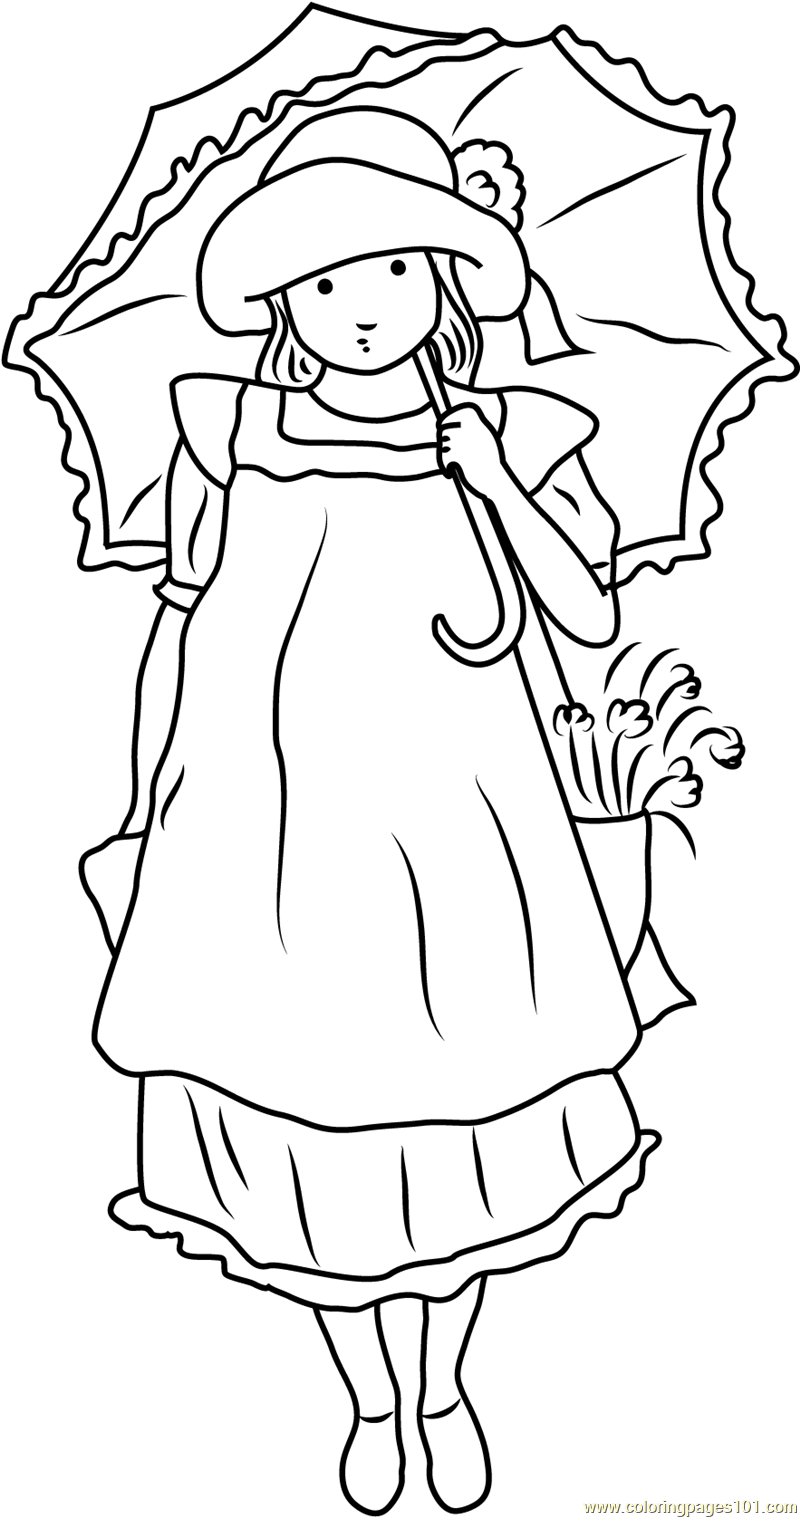 Holly Hobbie with Umbrella Coloring Page Free Holly Hobbie